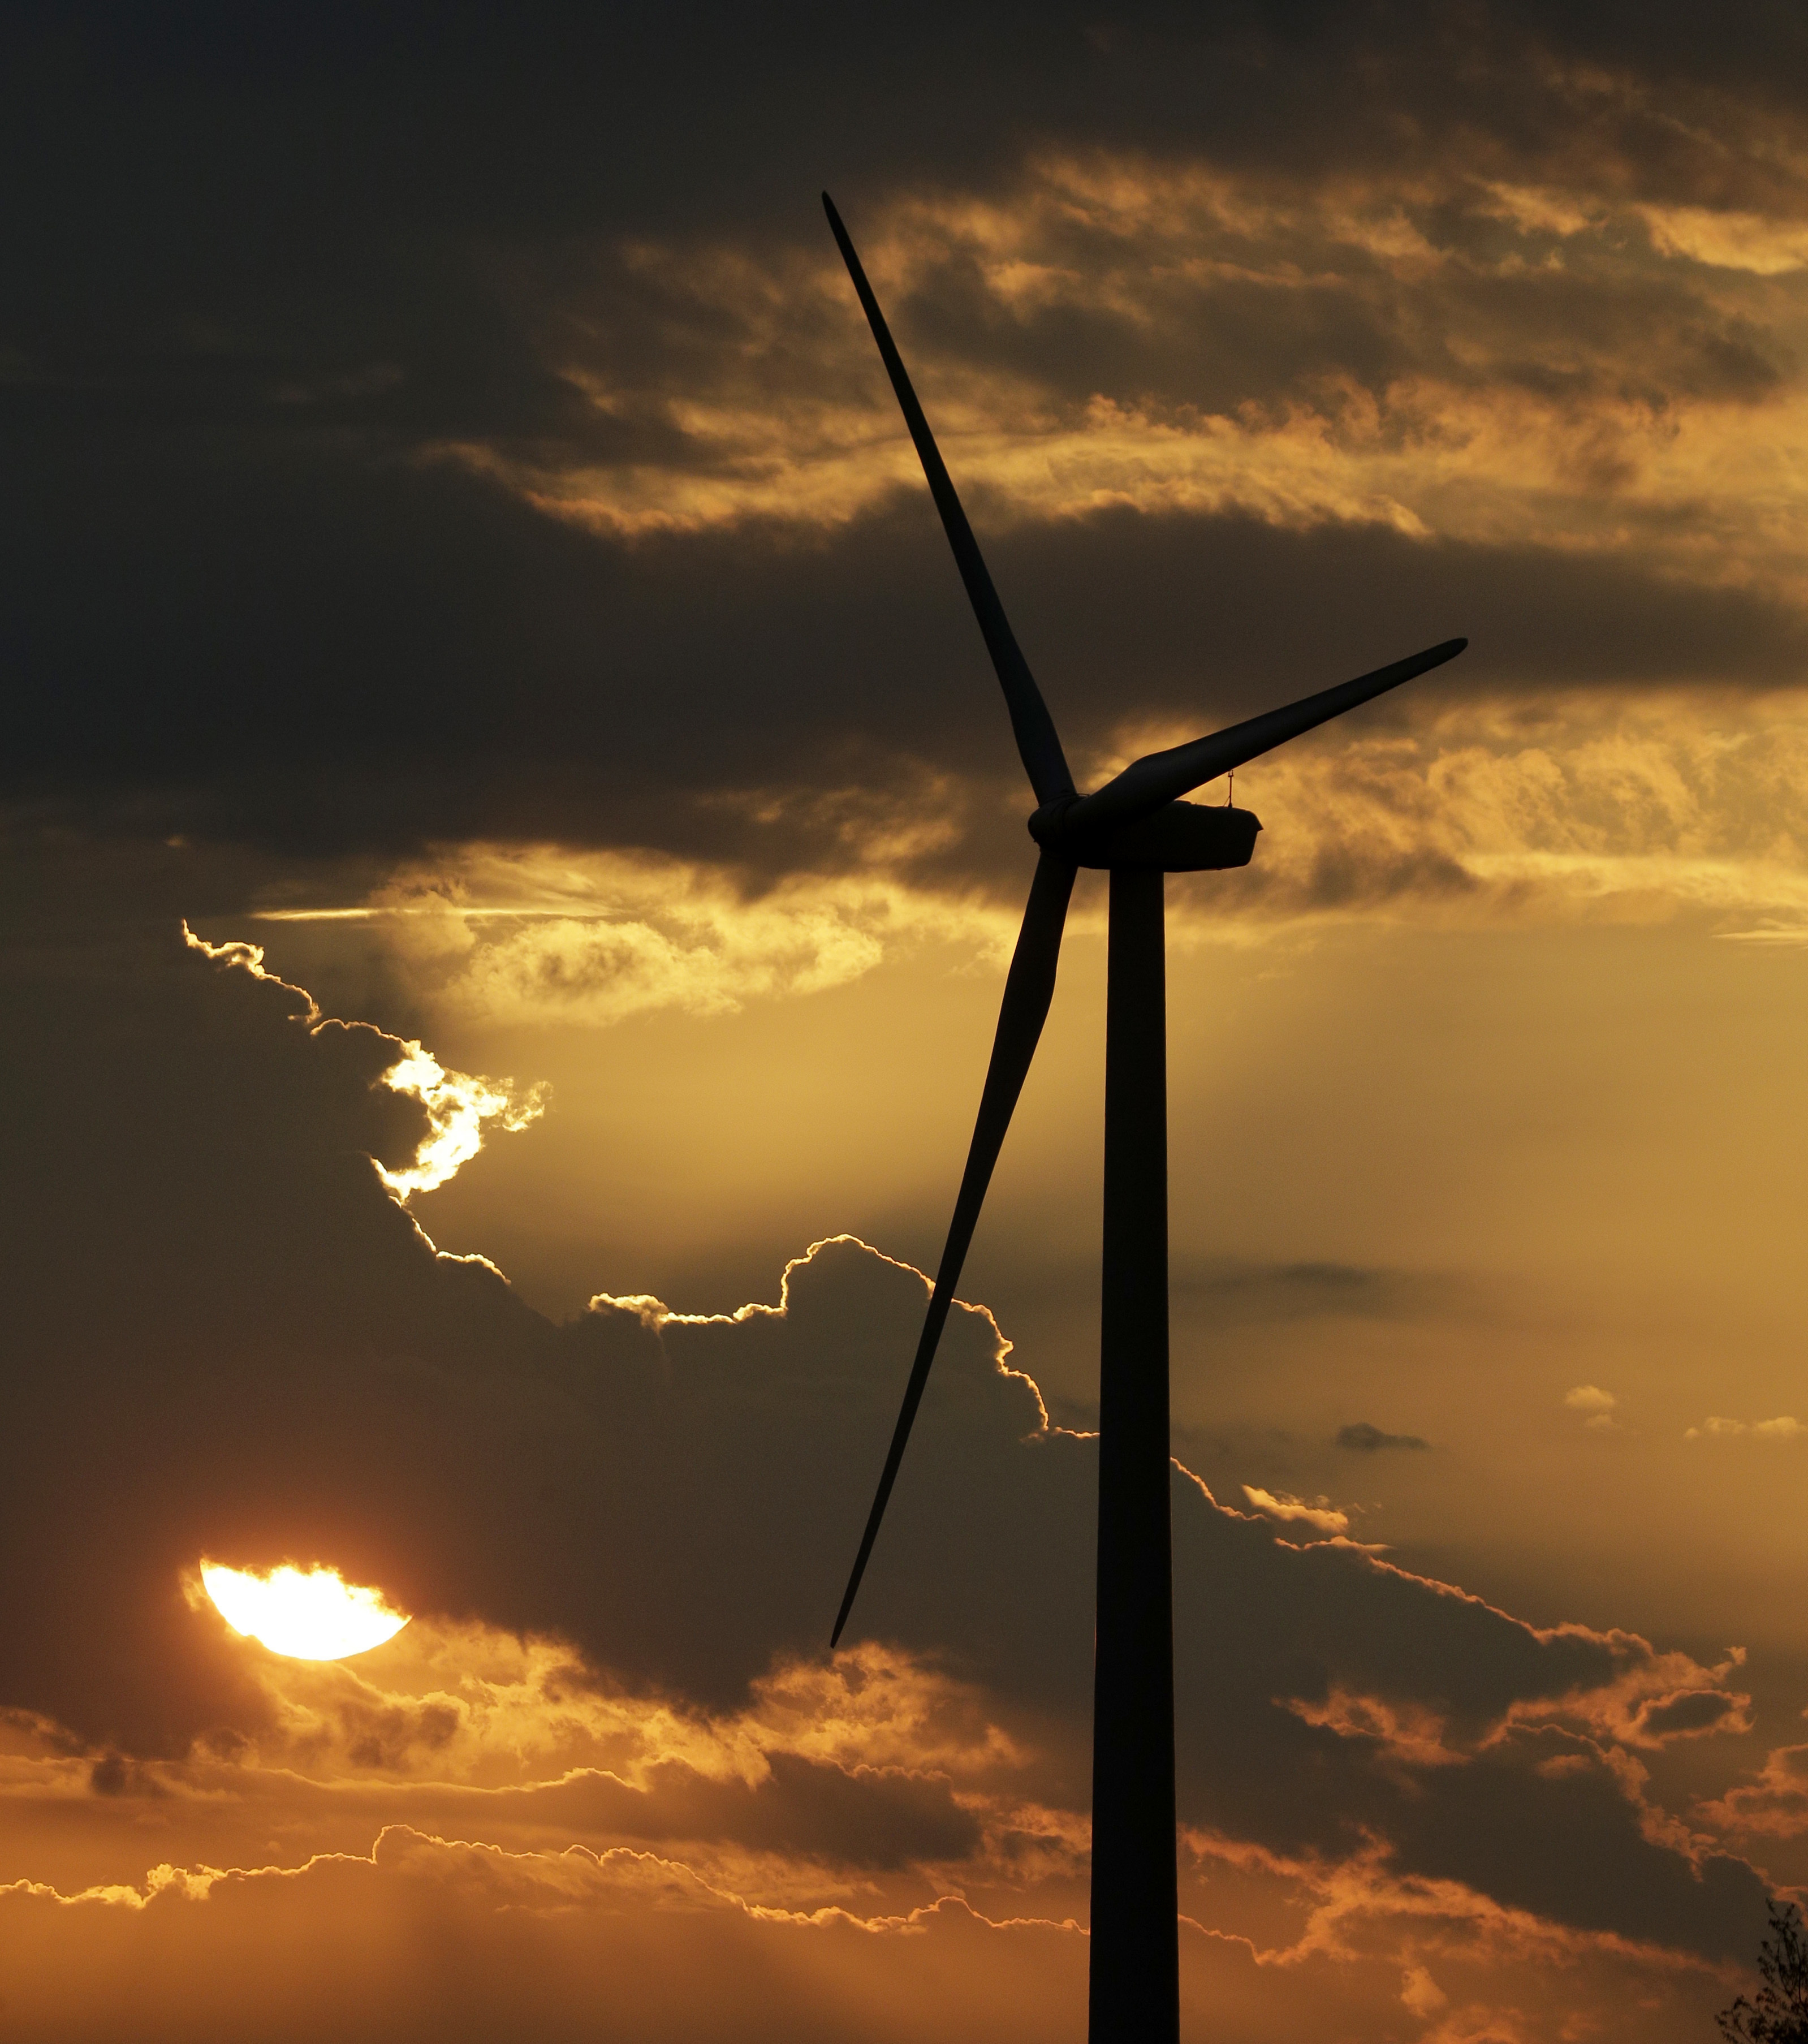 Trumps Climate War-2 FILE - In this June 1, 2017 file photo, a wind turbine, part of the Lost Creek Wind Farm, is silhouetted against the setting sun near King City, Mo. President Donald Trump's recent decision to pull the United States from the international climate deal reached in Paris was but the latest in a rapid-fire series of moves that would weaken or dismantle federal initiatives to reduce carbon emissions, which scientists say are heating the planet to levels that could have disastrous consequences. . (AP Photo/Charlie Riedel)